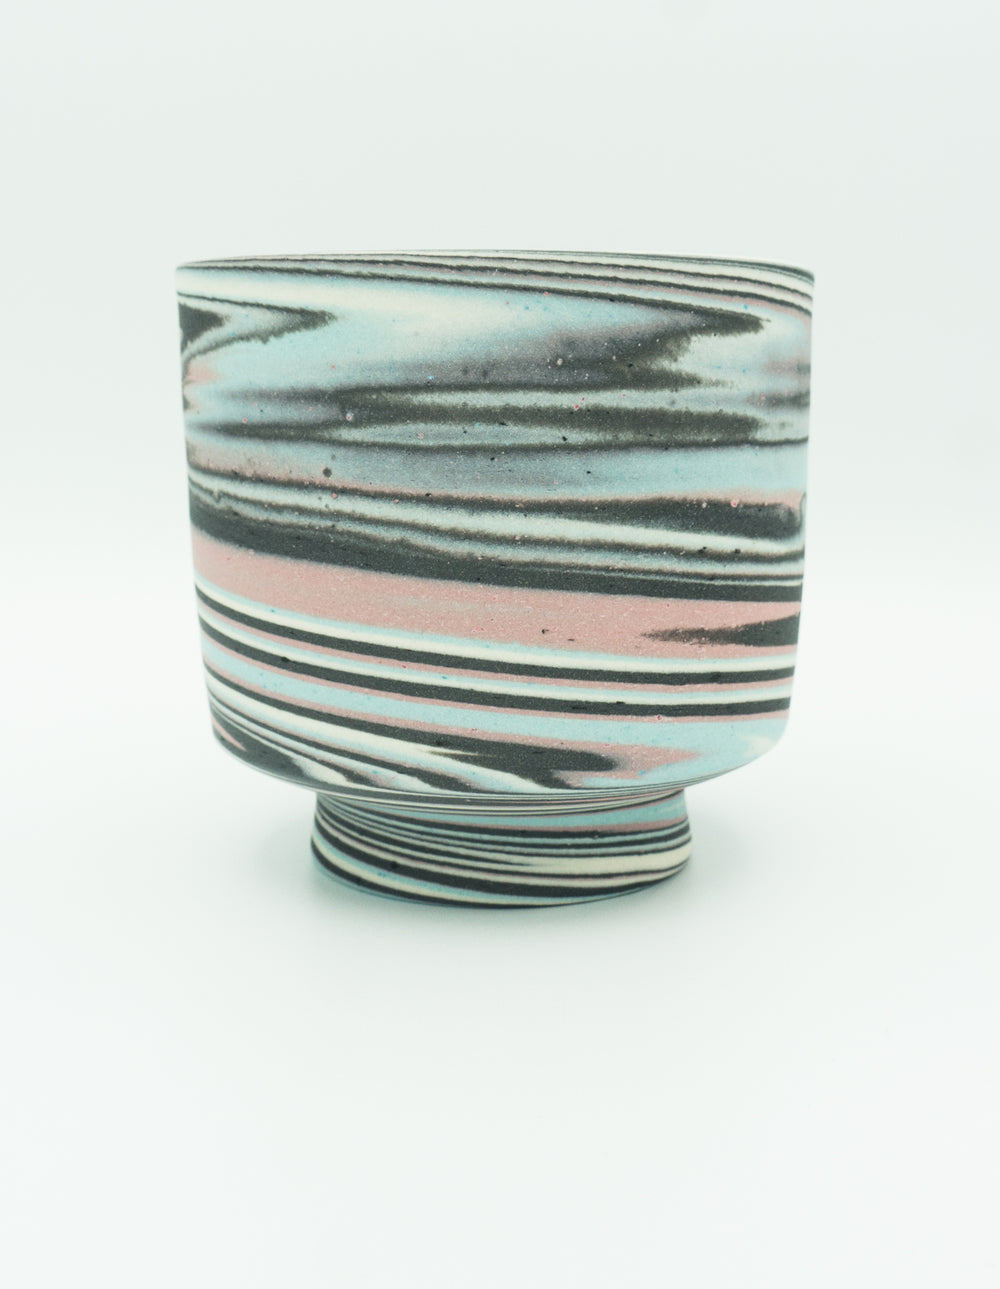 Small Agateware Tea Bowl in Pink, Blue, Black & White